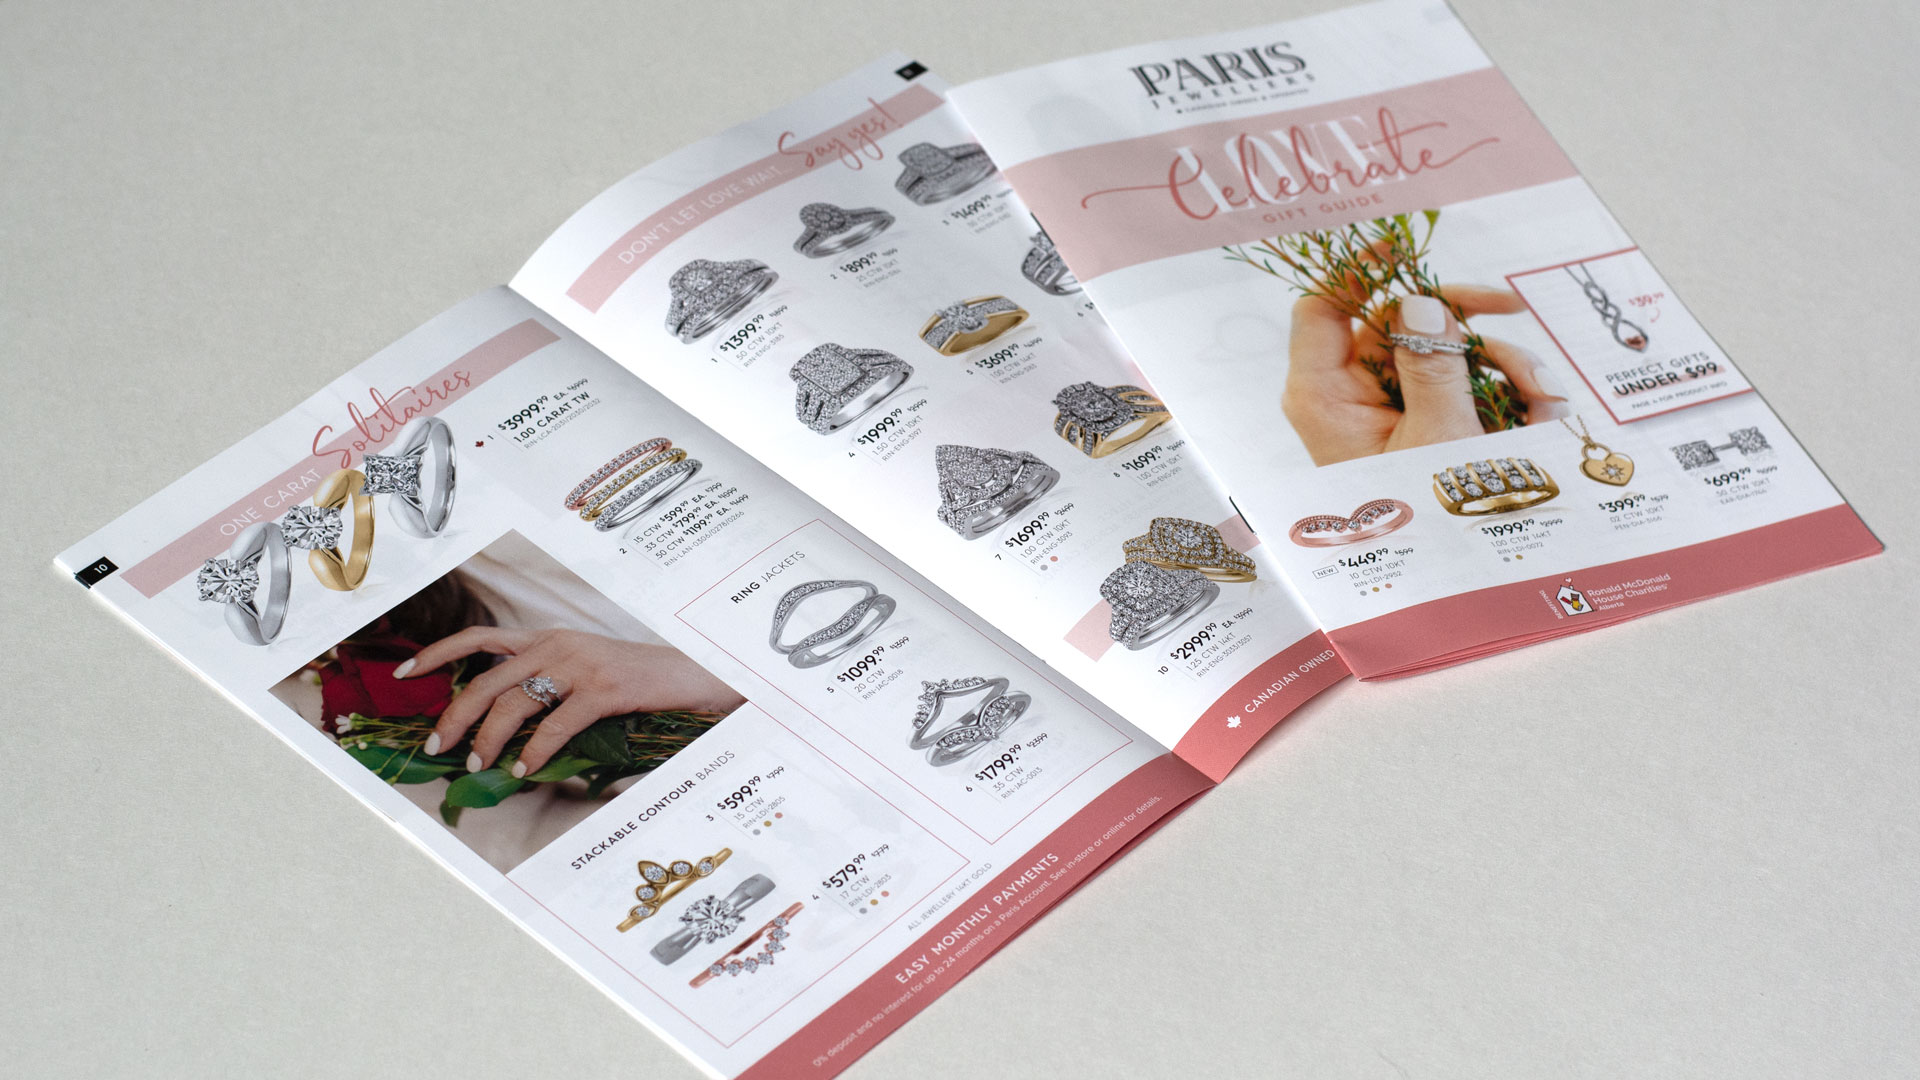 Paris Jewellers Valentines 2021 Flyer physical print layout